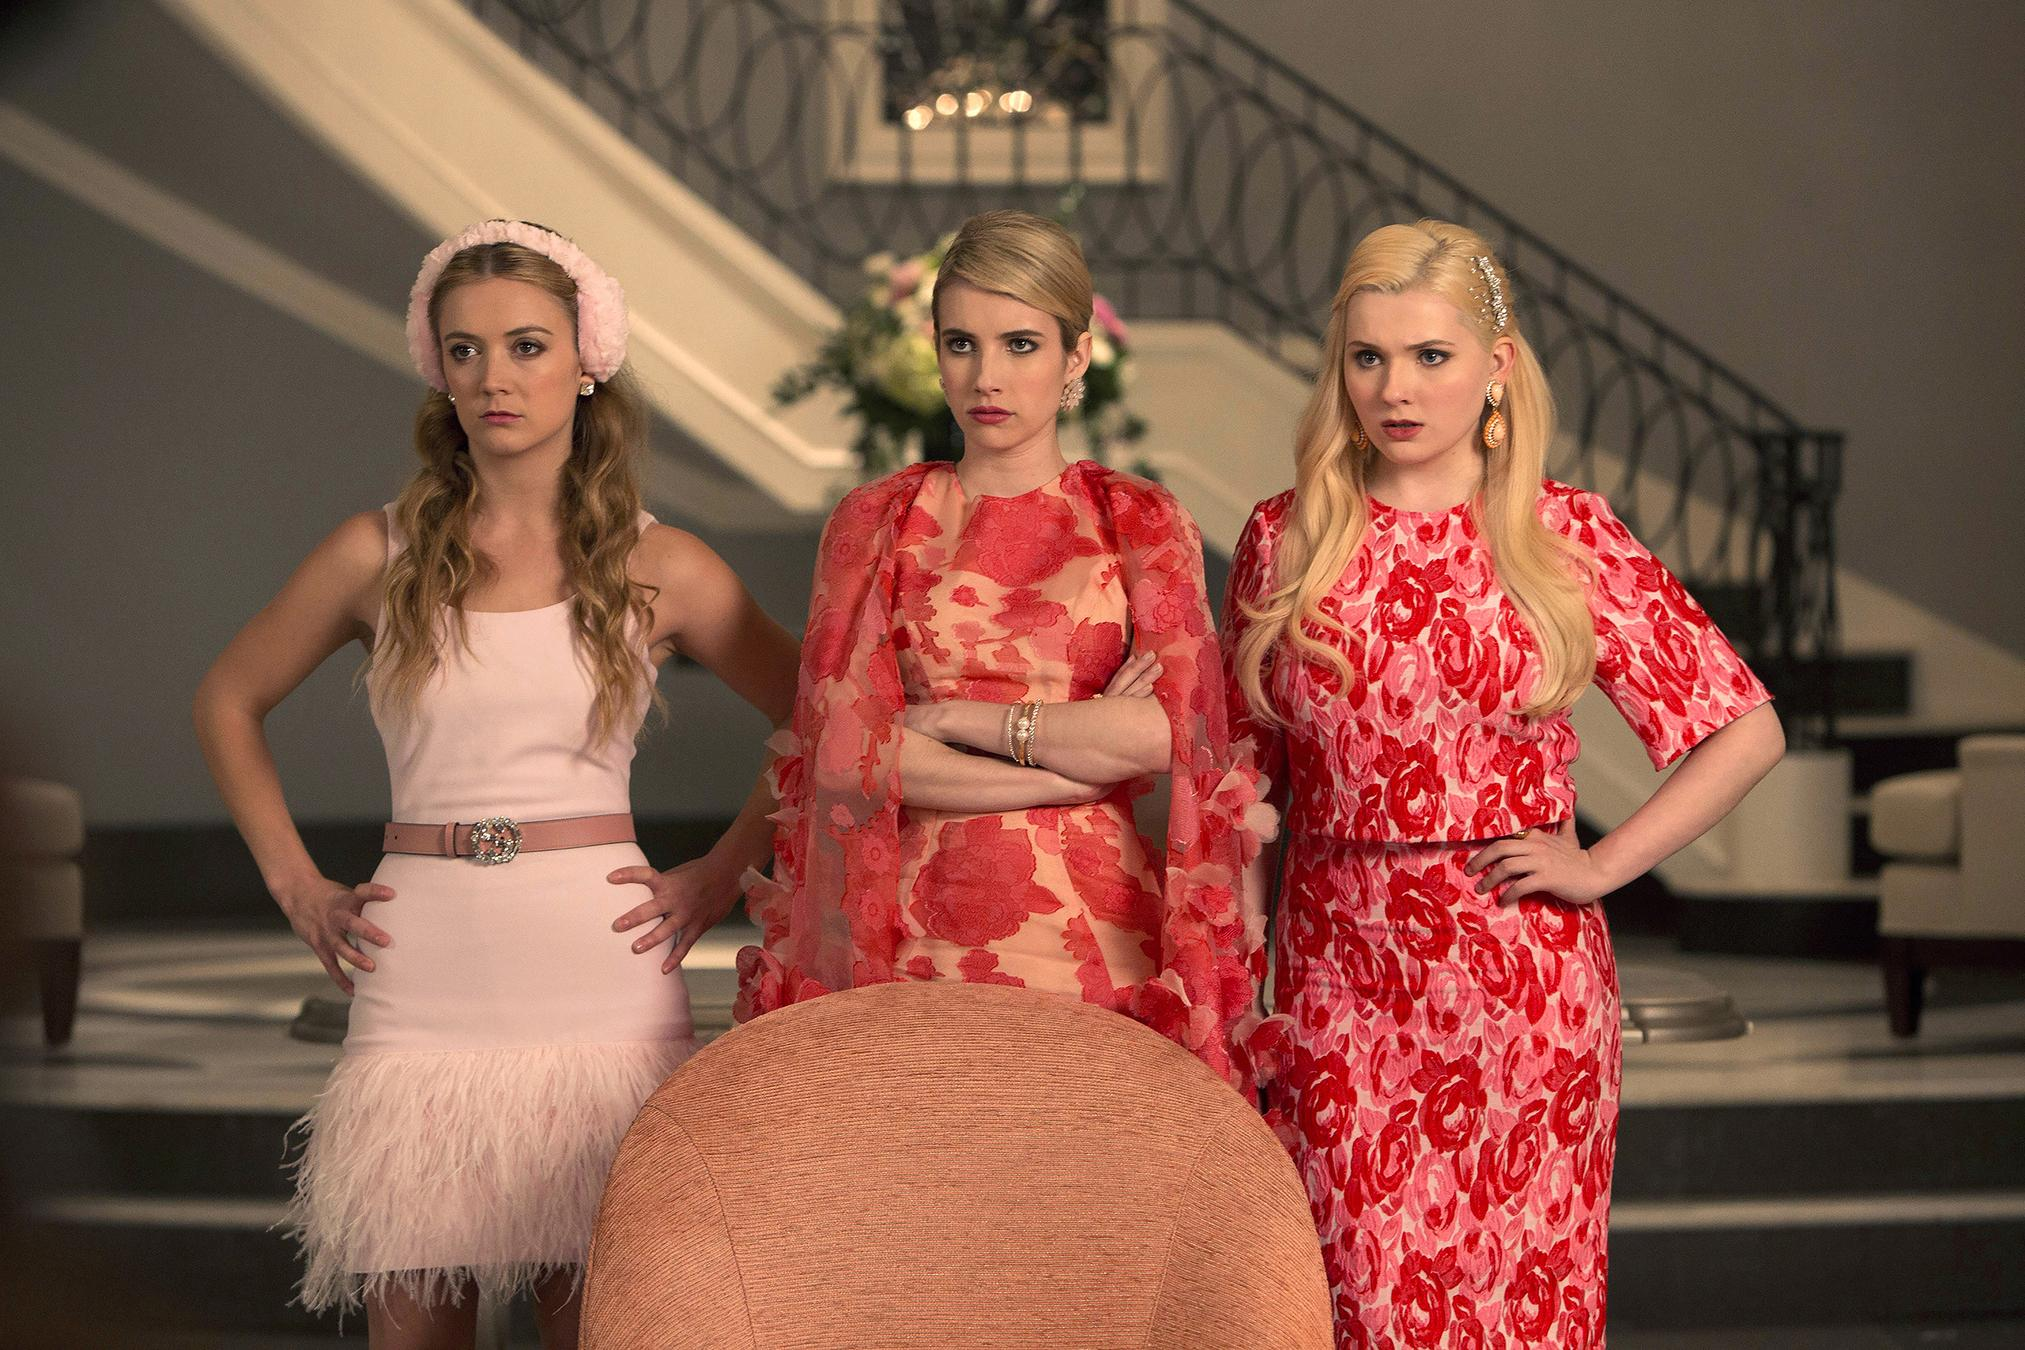 Billie Lourd as Chanel #3, Emma Roberts as Chanel Oberlin and Abigail Breslin as Chanel #5